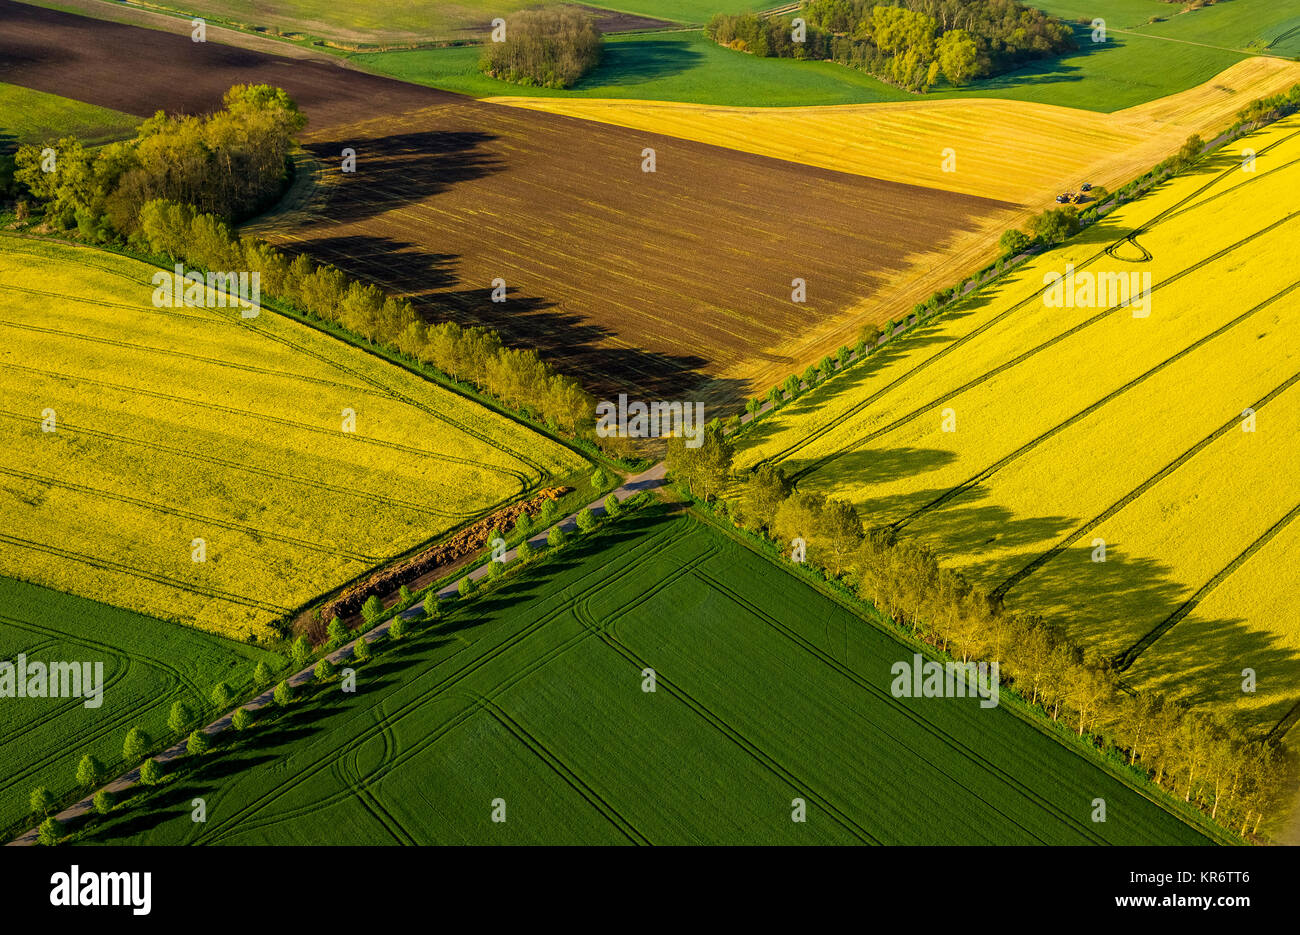 Road Junction, Avenue intersection with blooming rapeseed fields, Groß Roge, Mecklenburg Lake District, Mecklenburg - Stock Image